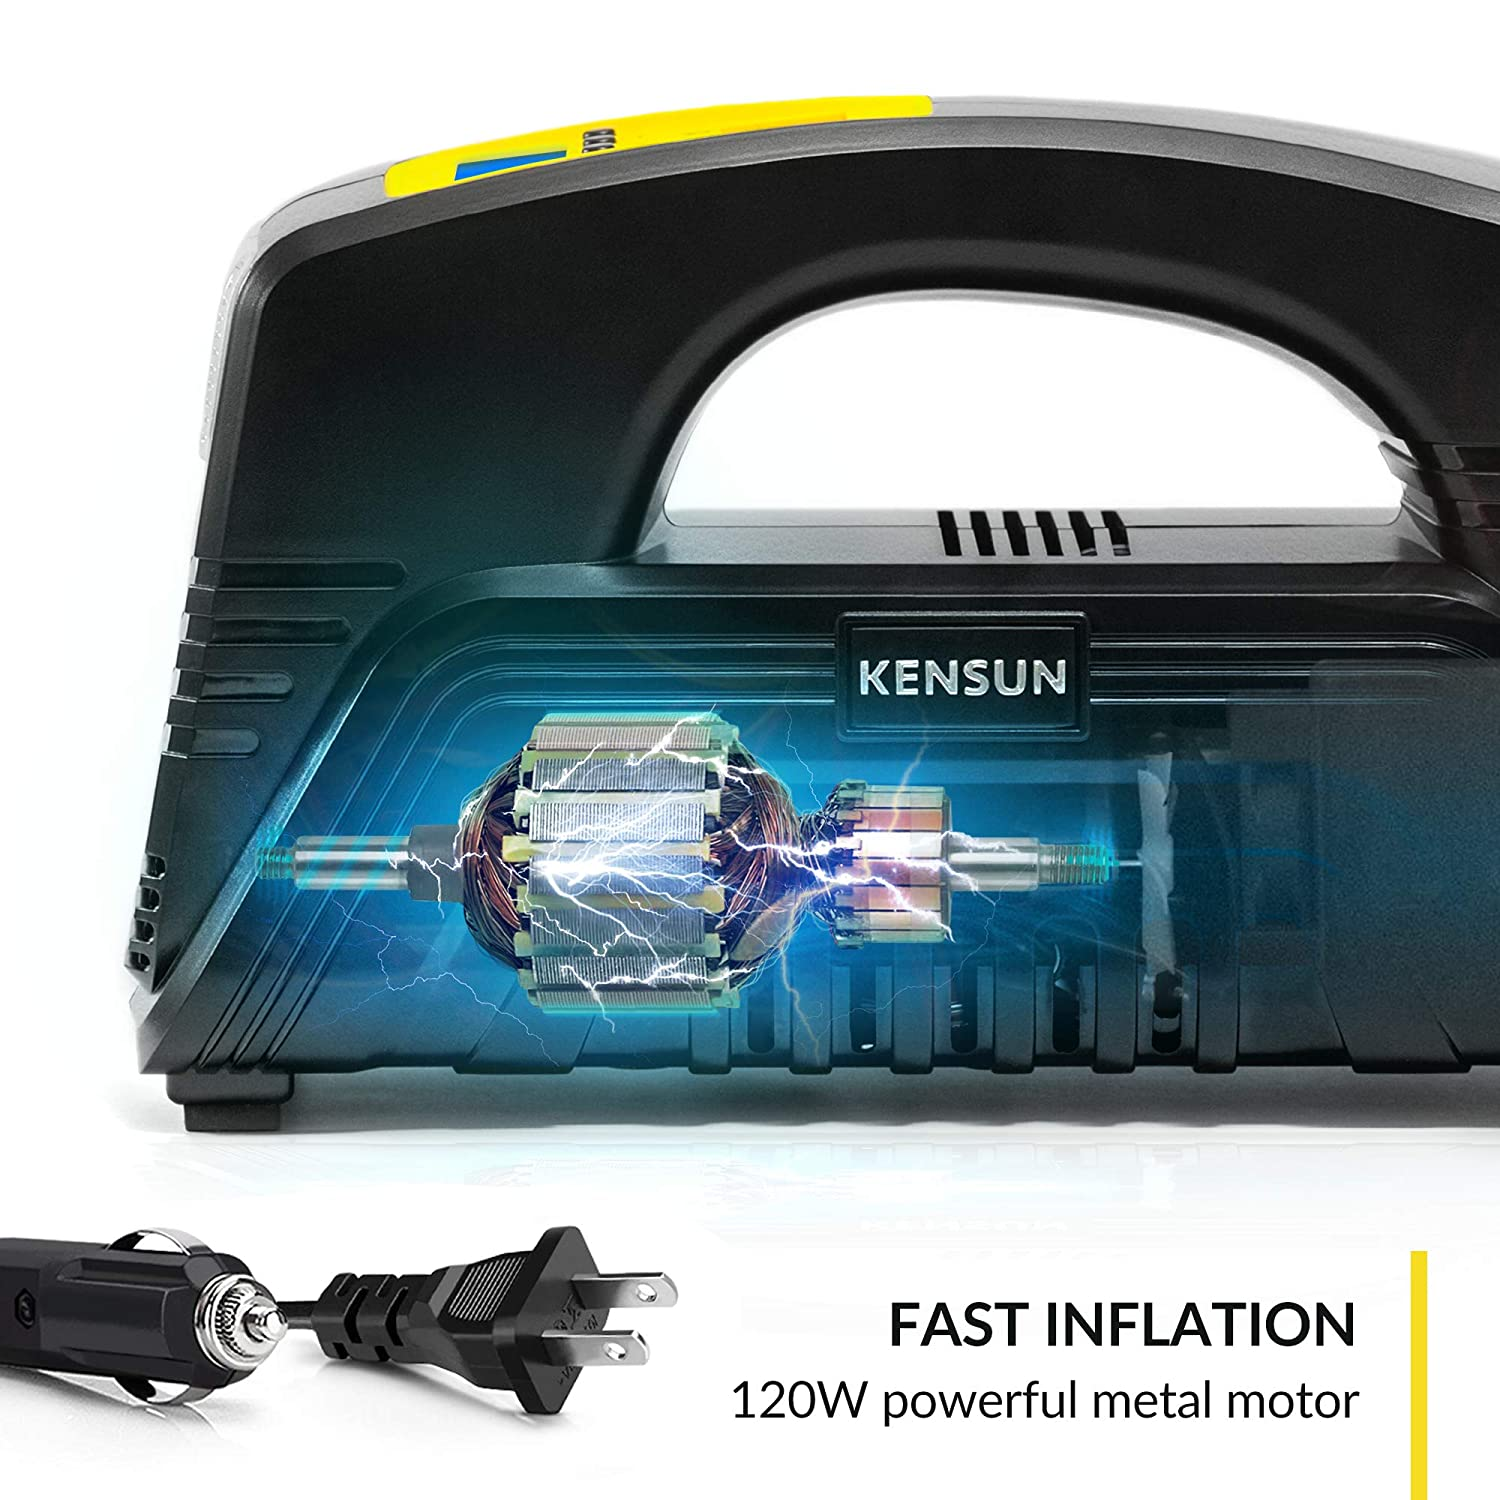 Kensun AC DC Digital Tire Inflator for Car 12V DC and Home 110V AC Rapid Performance Portable Air Compressor Pump for Car, Bicycle, Motorcycle, Basketball and Others